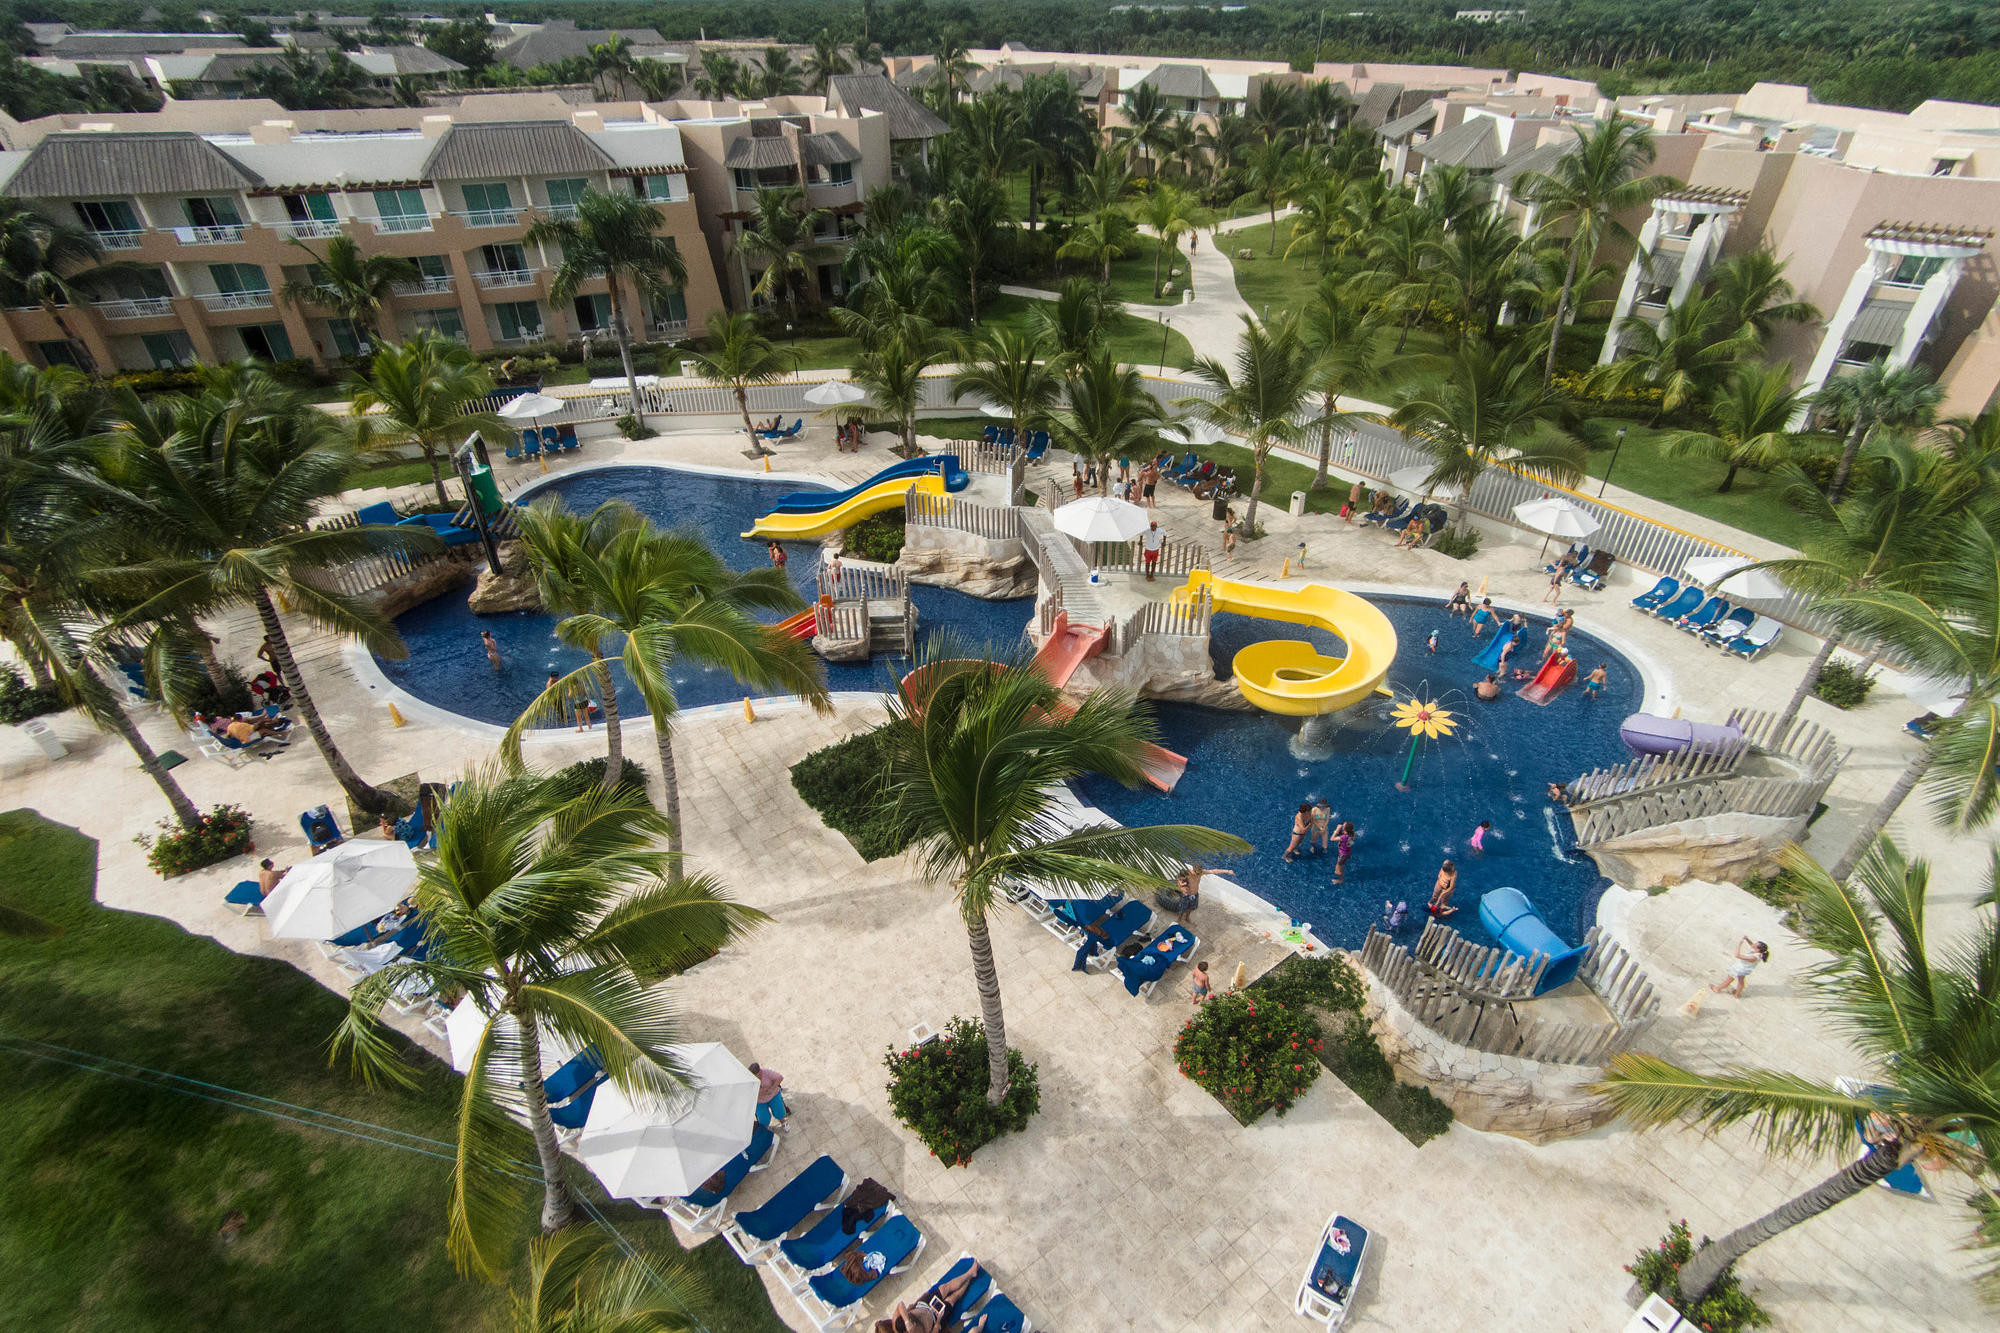 One of the water park areas at Memories Splash Punta Cana